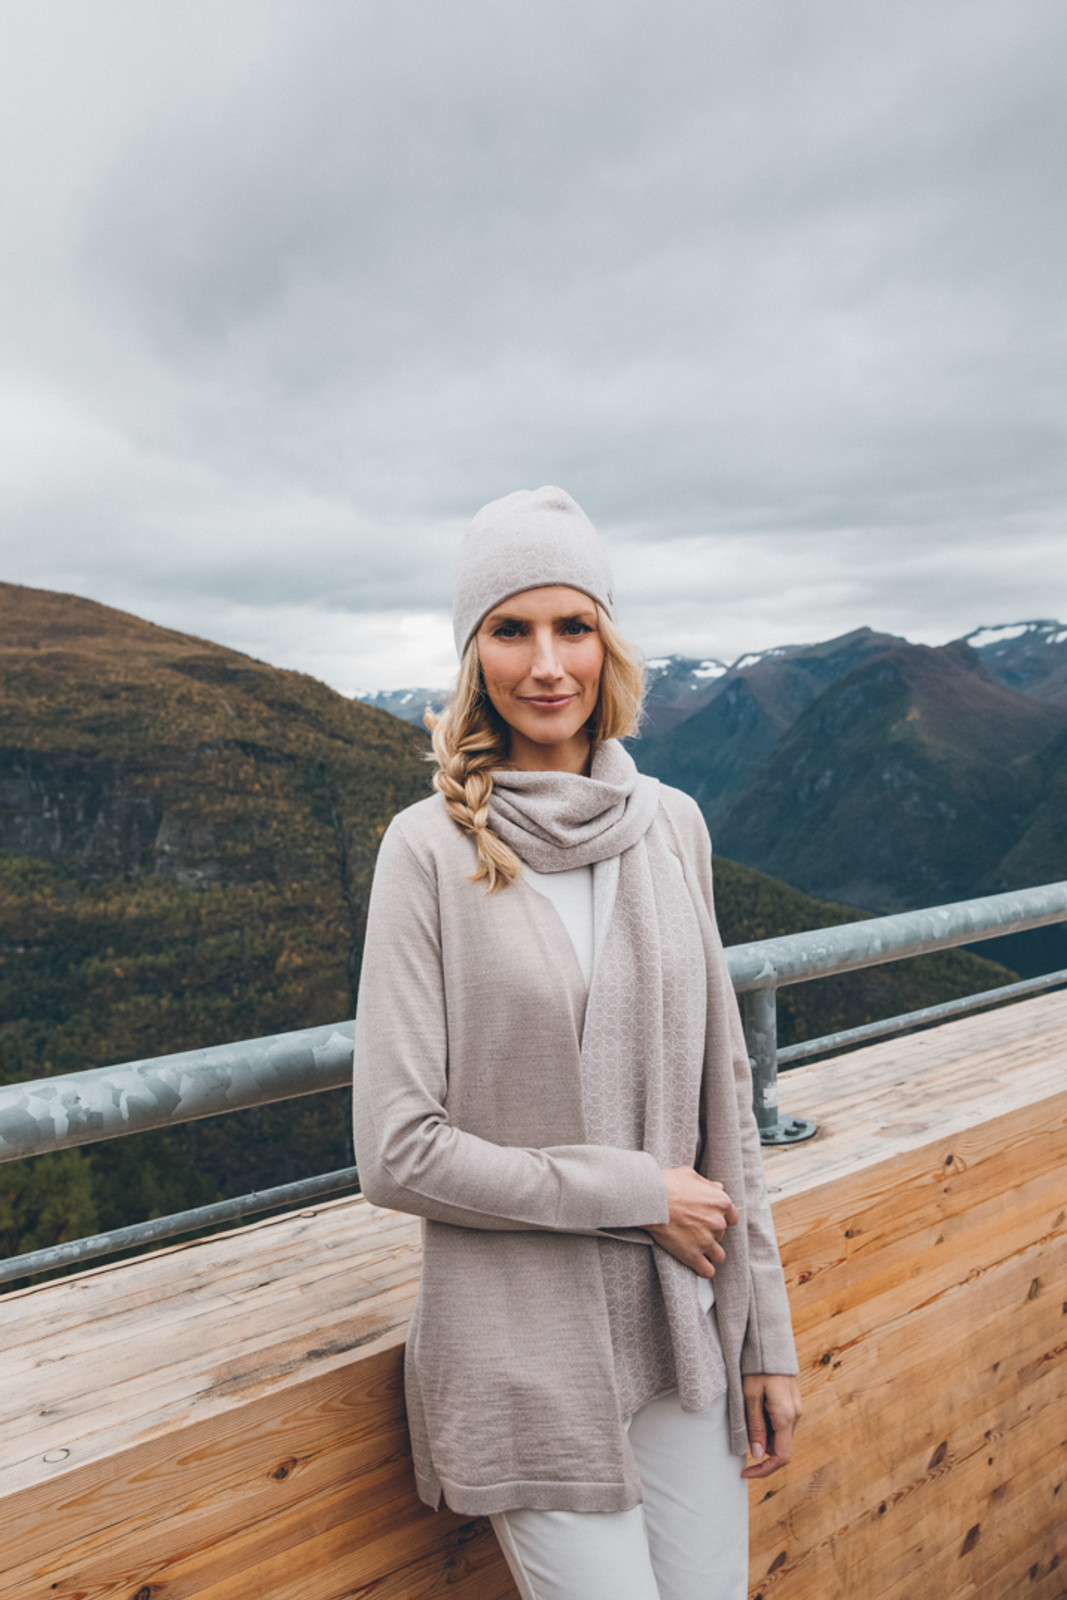 Woman wearing Dale of Norway's Marie ladies cardigan in Sand, 83351-P, with Stjerne hat in Sand Mel/Off White Mel, 48121-P, and Stjerne Scarf in Sand Mel/Off White Mel 11671-P.